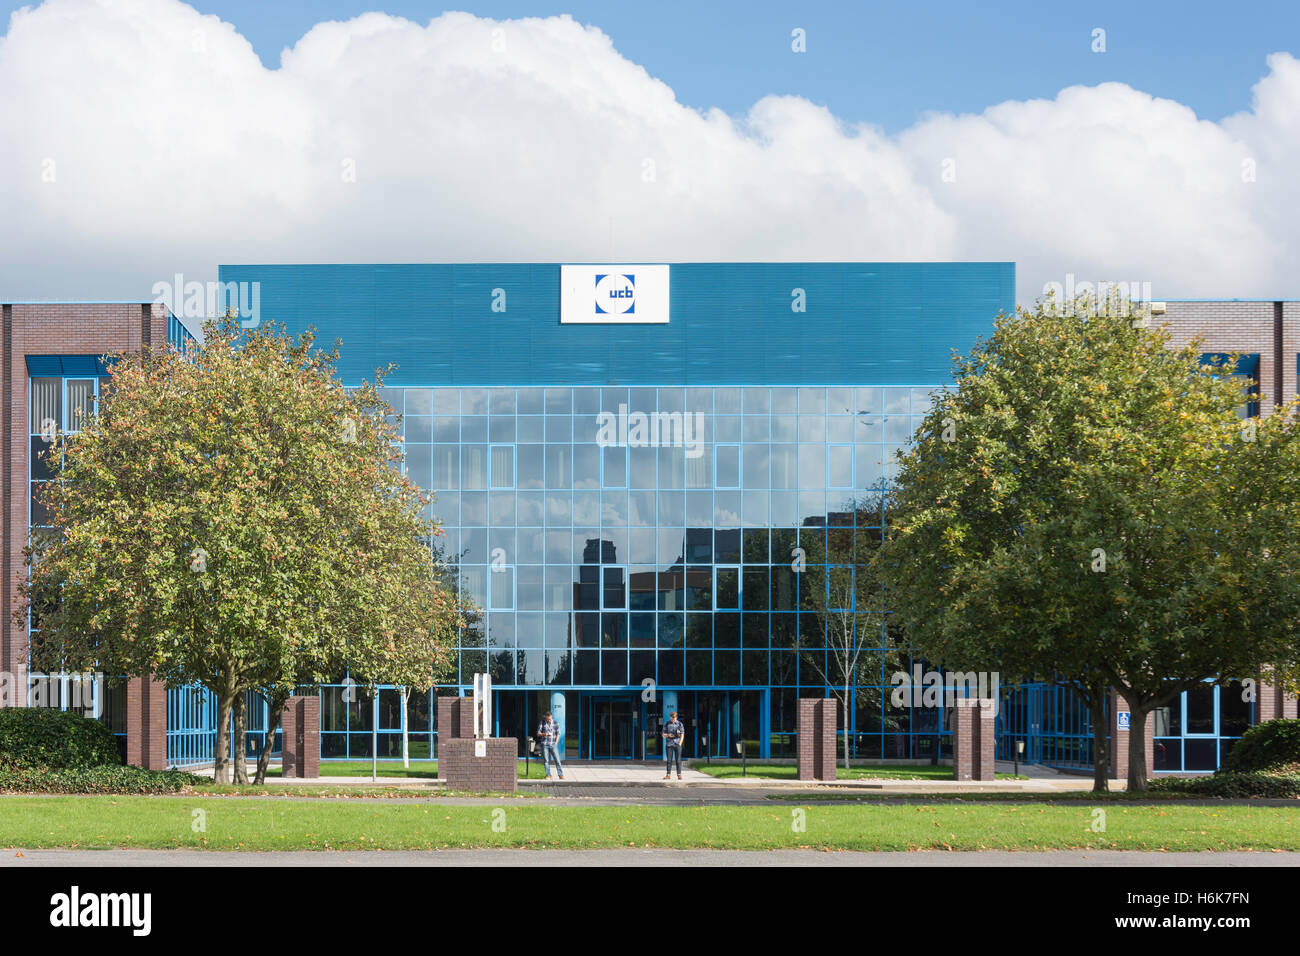 UCB (Investments) Ltd, Slough Trading Estate, Bath Road, Slough, Berkshire, England, United Kingdom - Stock Image